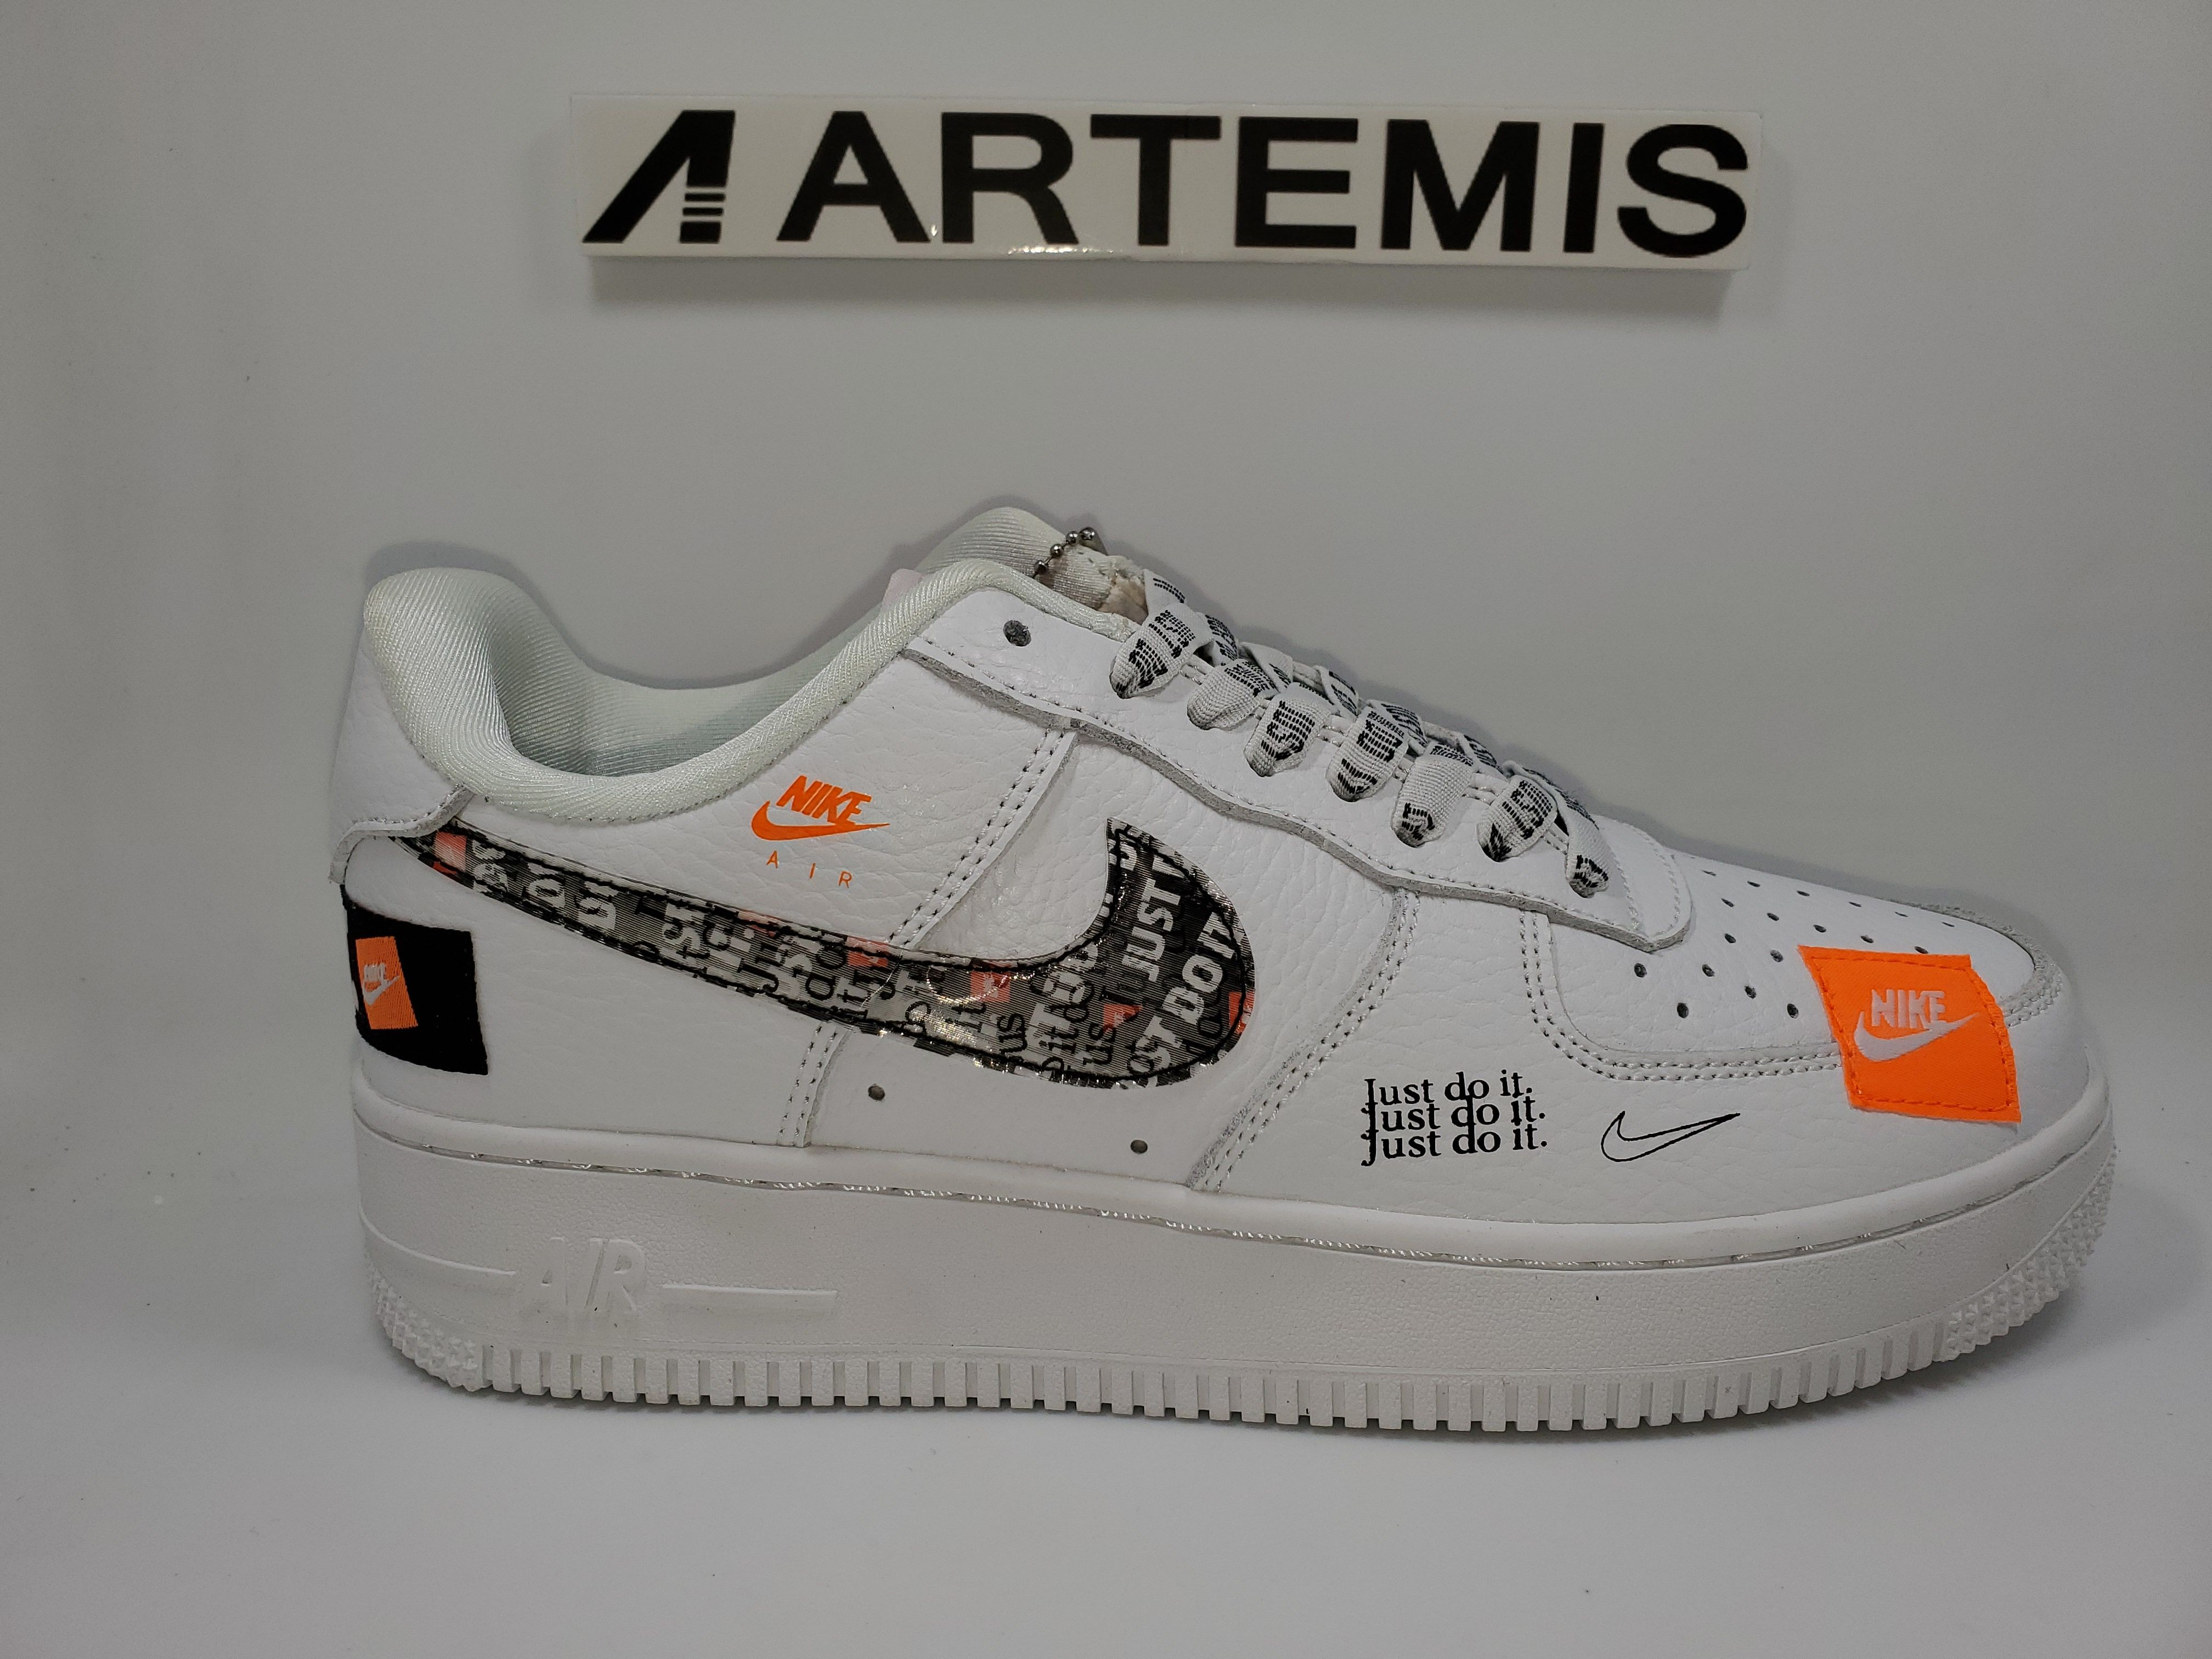 promo code 1846b d1734 Air Force 1 Low Just Do It Pack White/Black